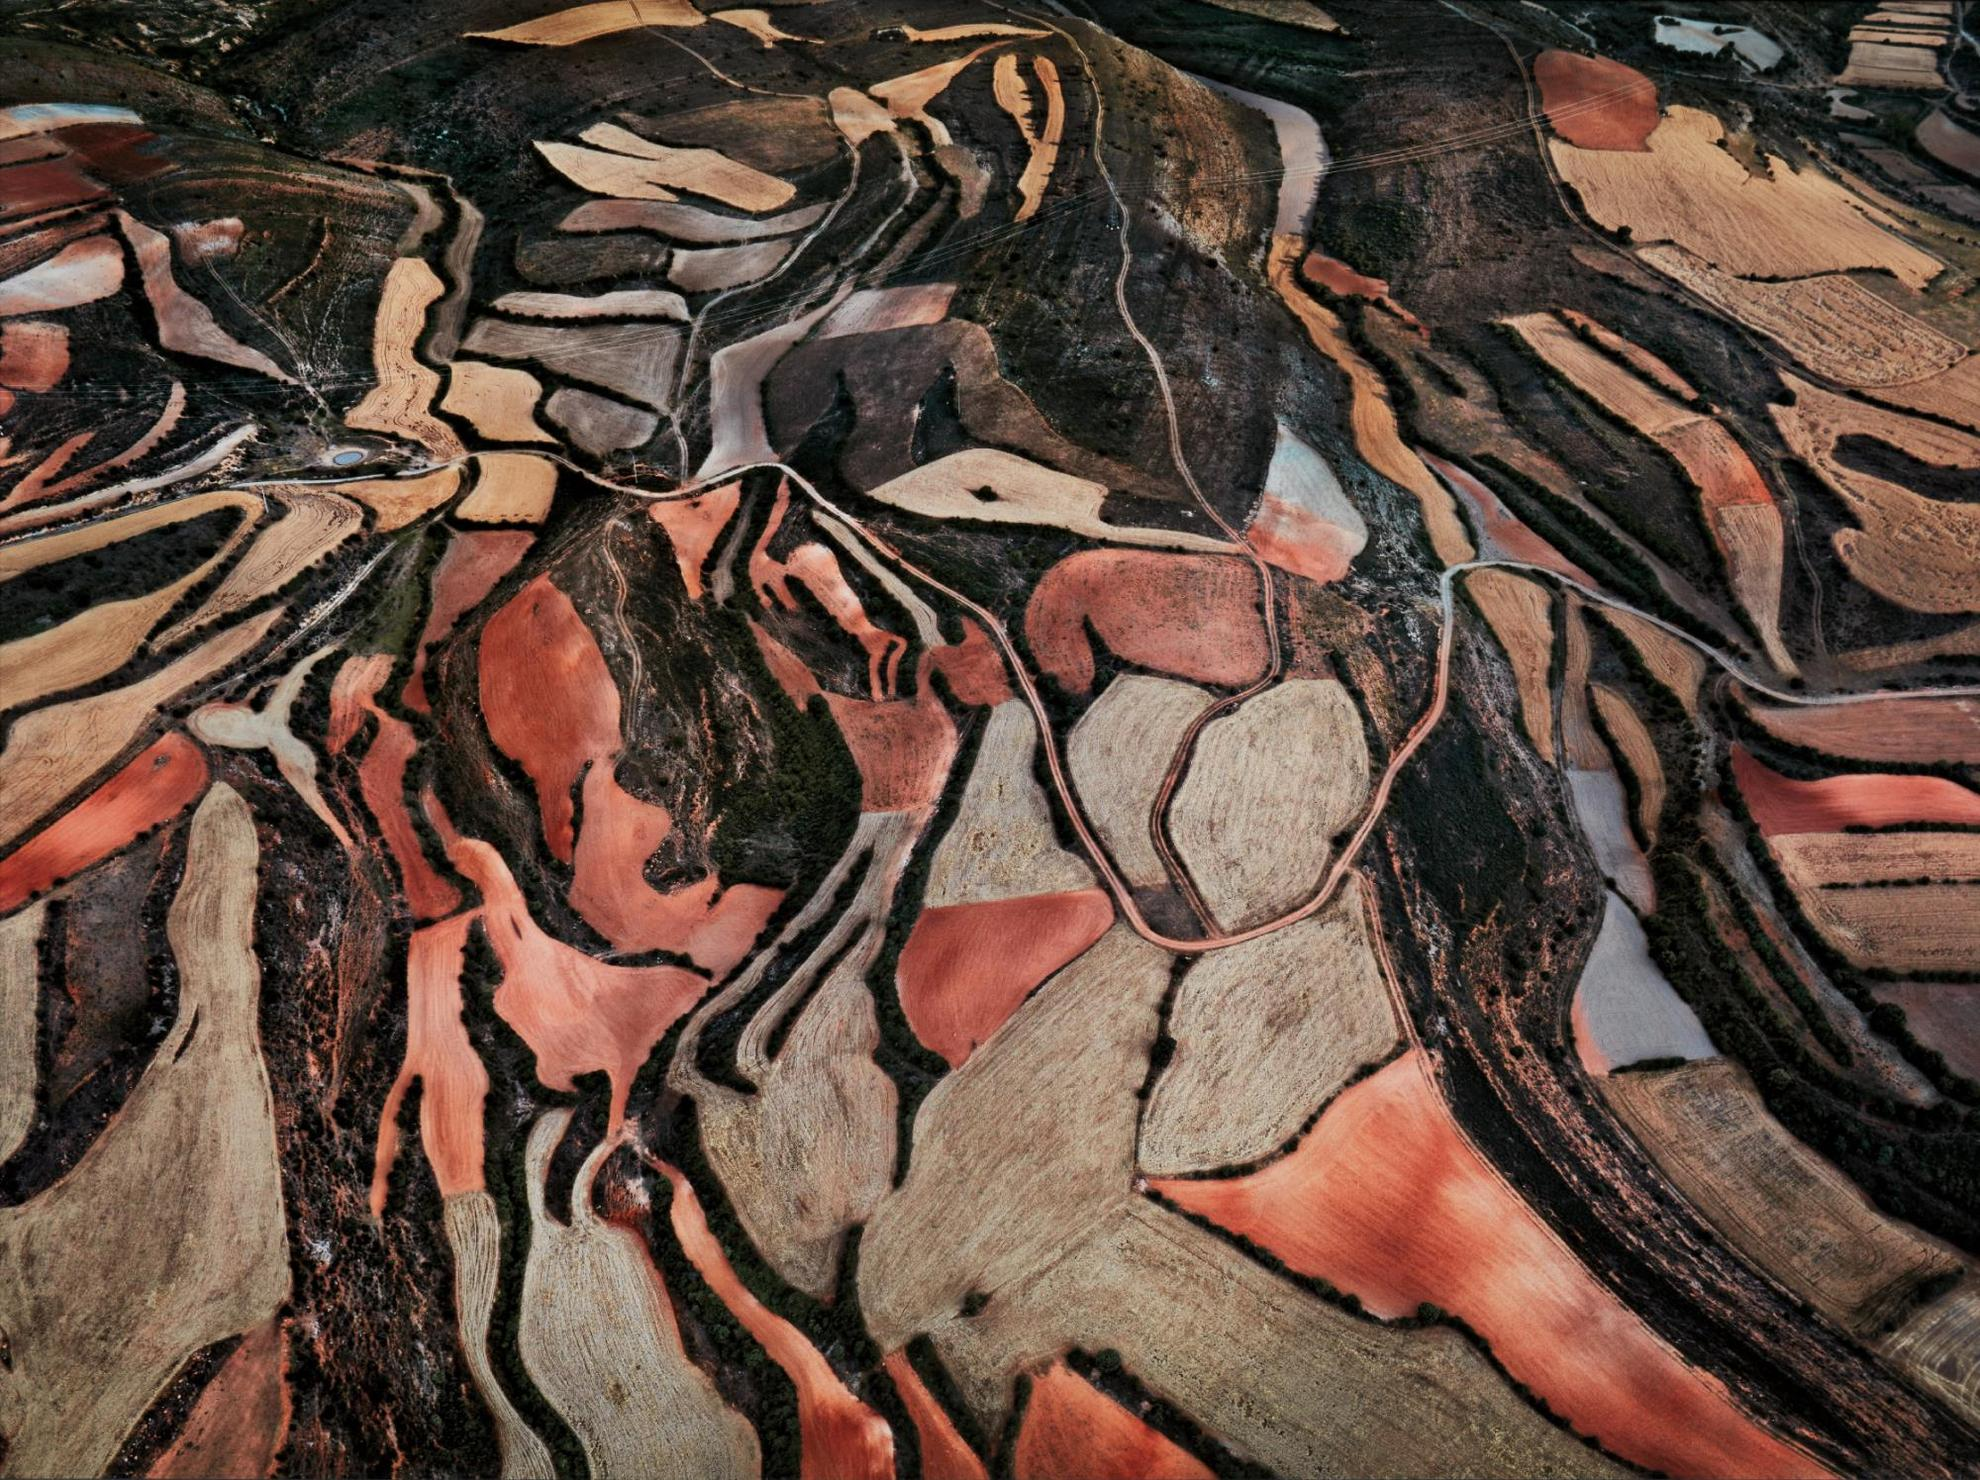 Edward Burtynsky-Dryland Farming #24, Monegros County, Aragon, Spain-2010